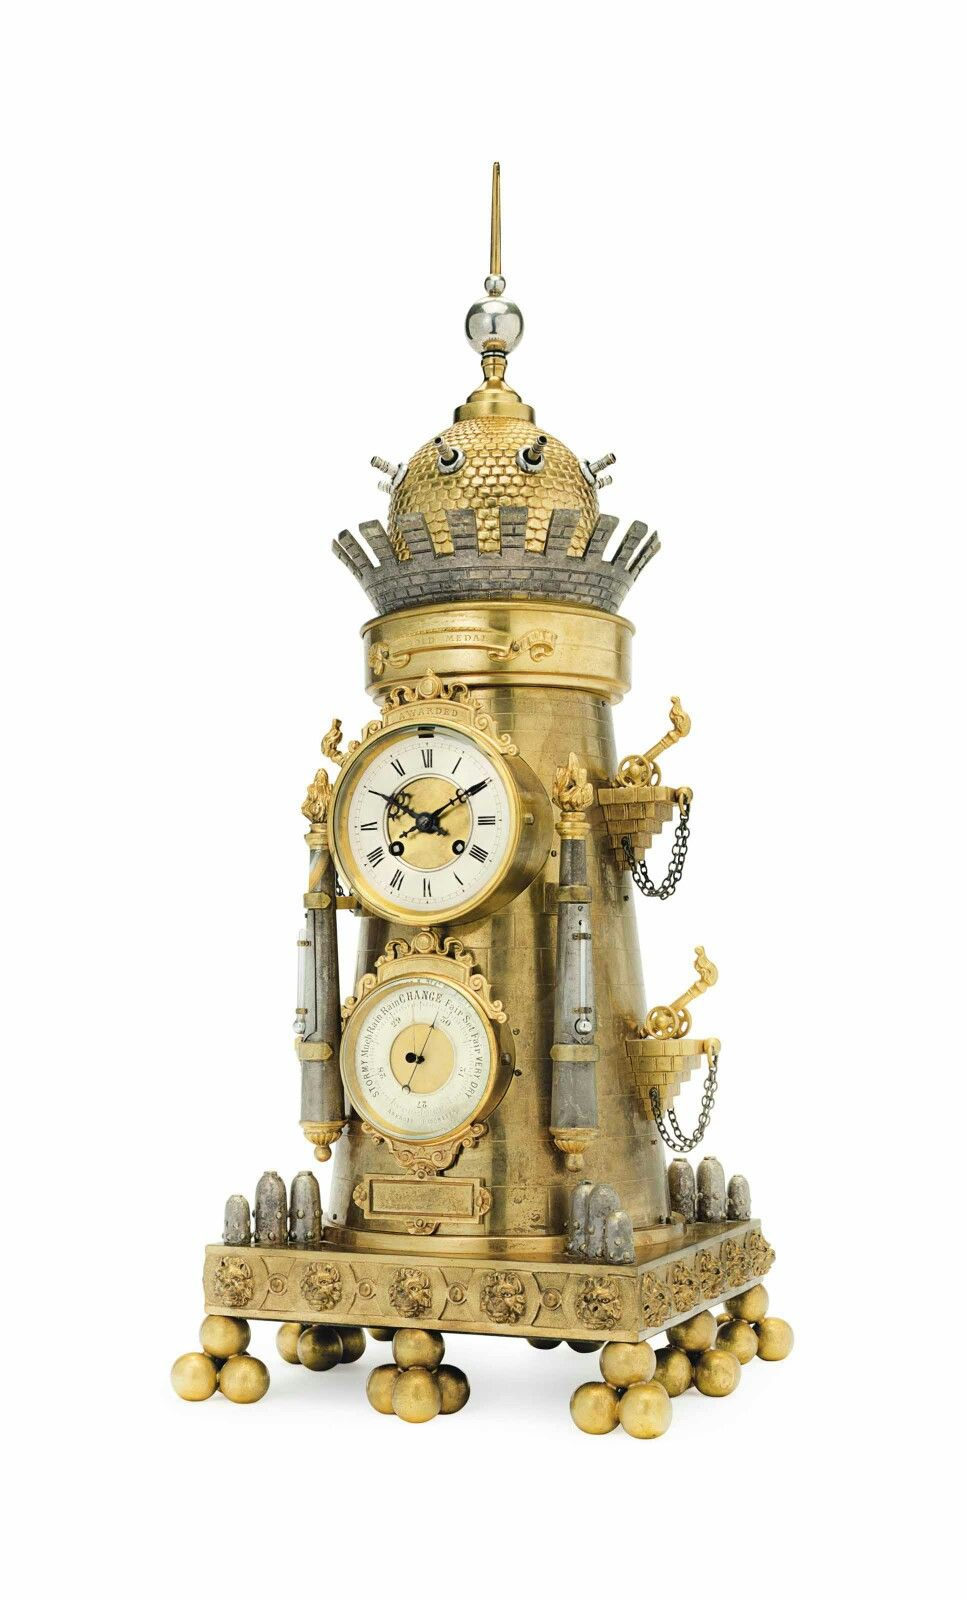 A French Ormolu And Silvered Bronze Automaton Clock And Barometer The Clockworks By Samuel Marti Circa 1889 Clock Antique Wall Clocks Wall Clock Brands